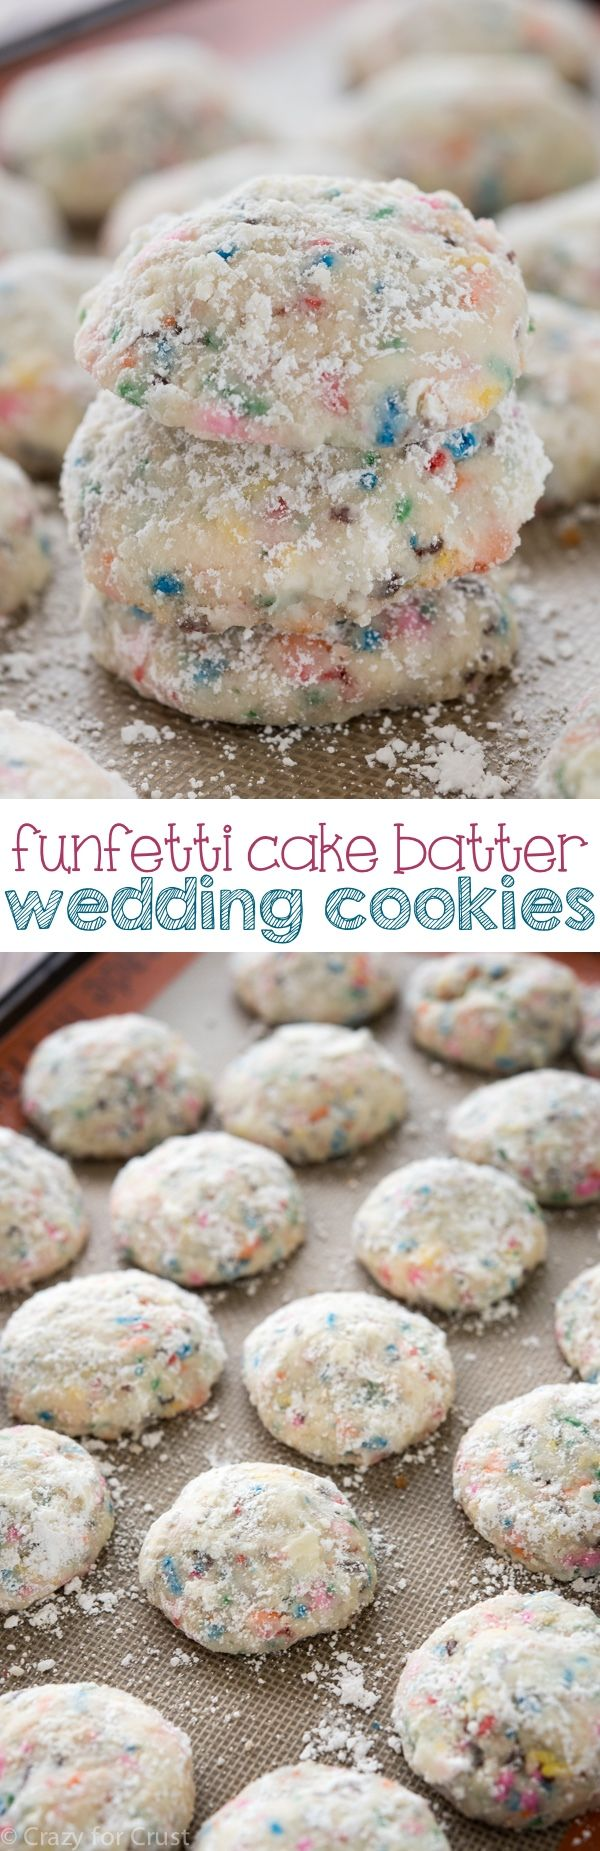 wedding cake cookie recipe easy 25 best ideas about wedding cookies on baby 22239